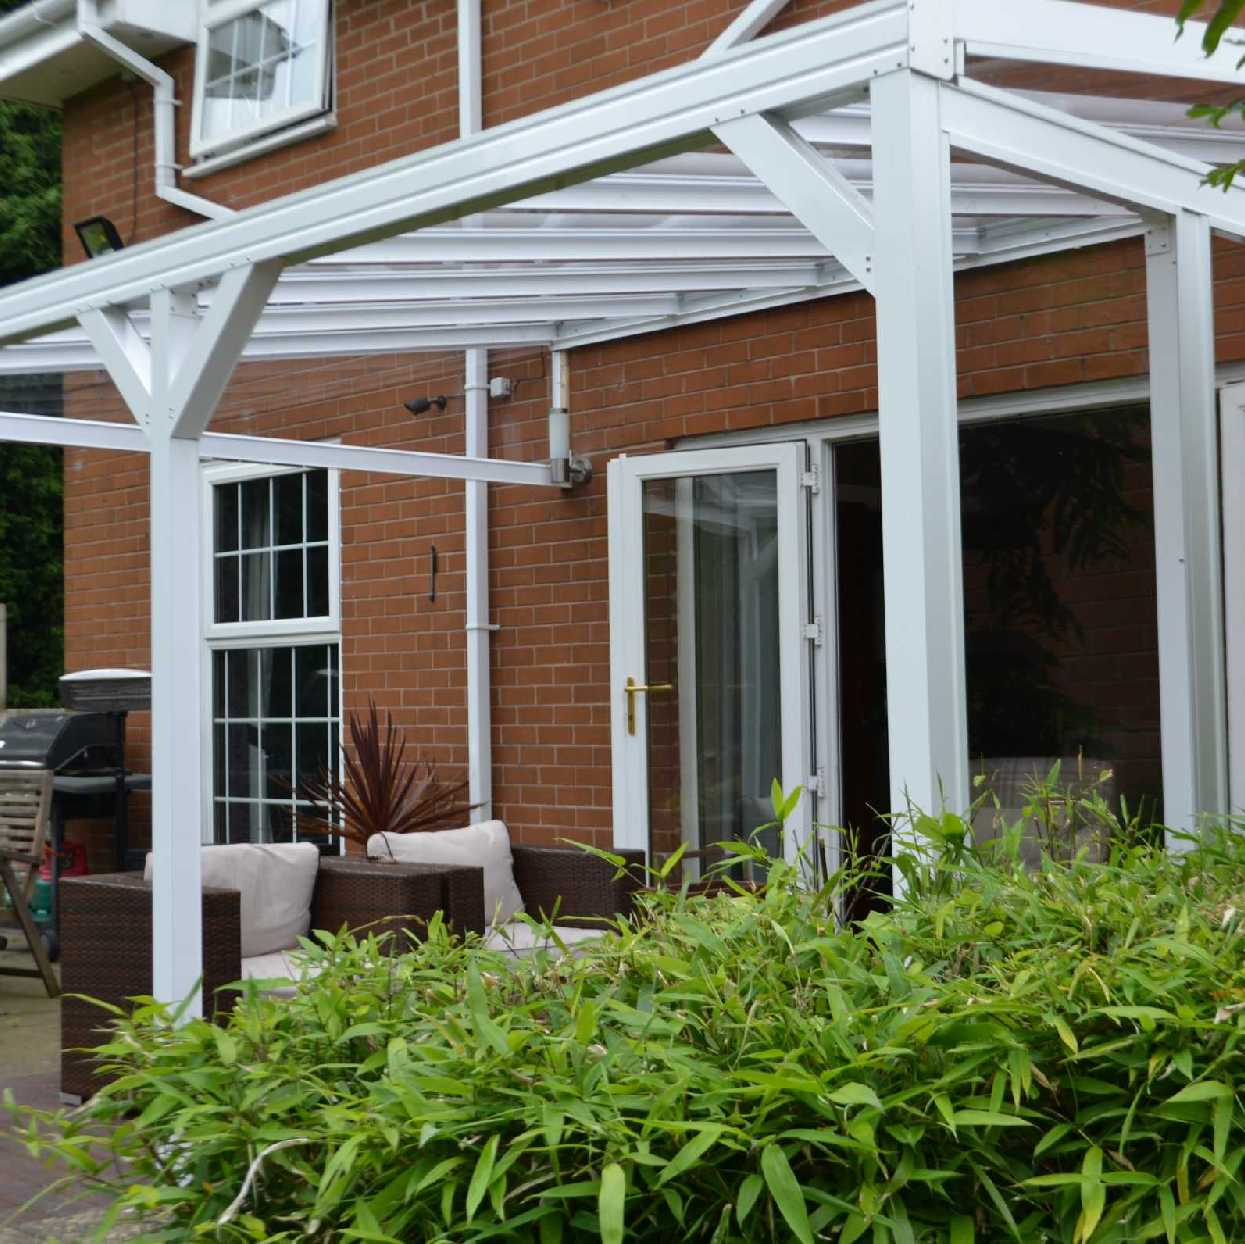 Omega Smart White Lean-To Canopy with 6mm Glass Clear Plate Polycarbonate Glazing - 2.1m (W) x 3.5m (P), (2) Supporting Posts from Omega Build